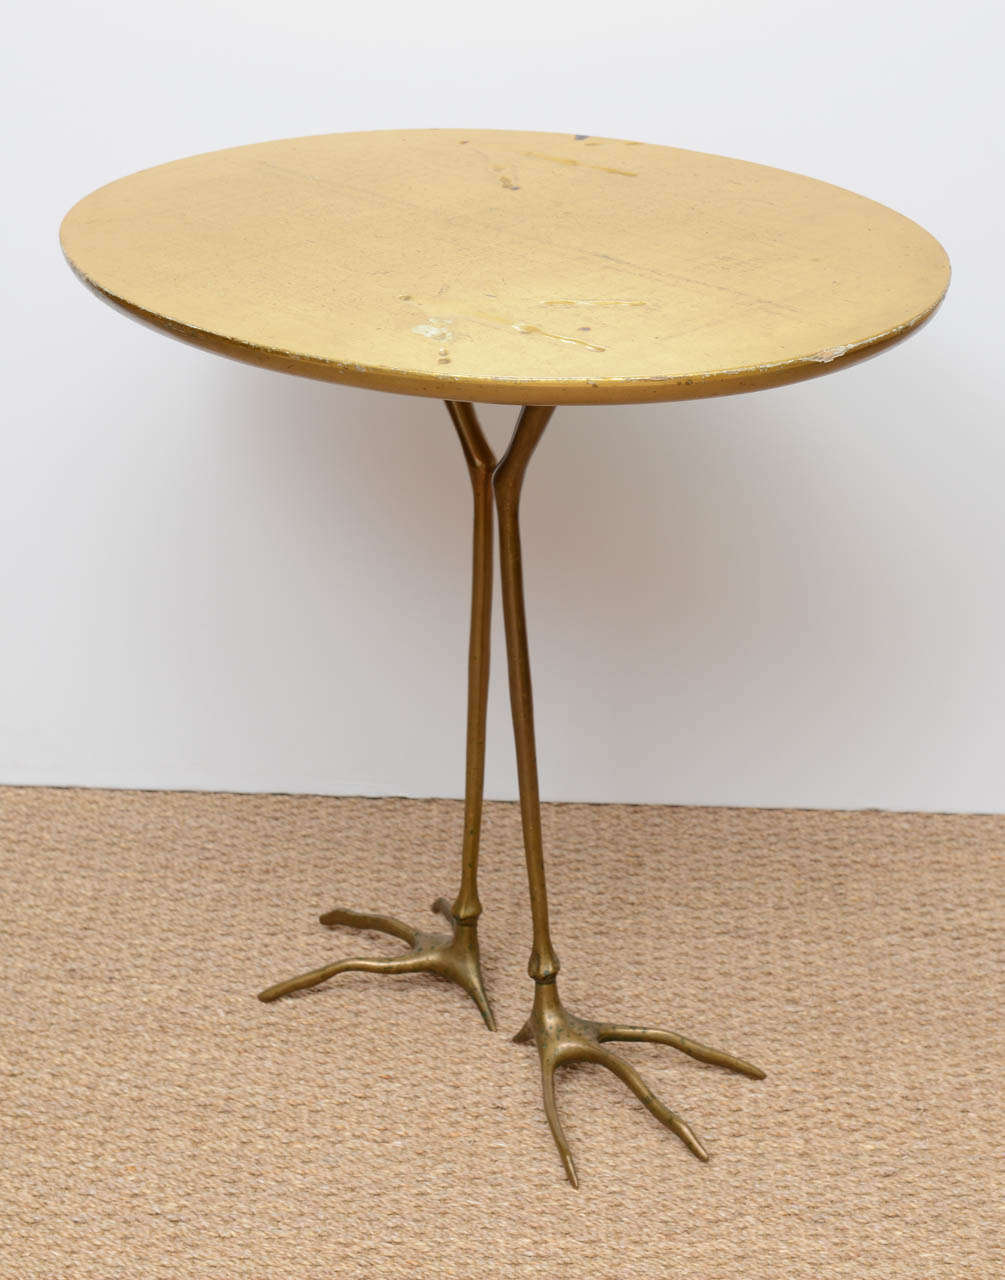 """Traccia"" Table by Meret Oppenheim 3"